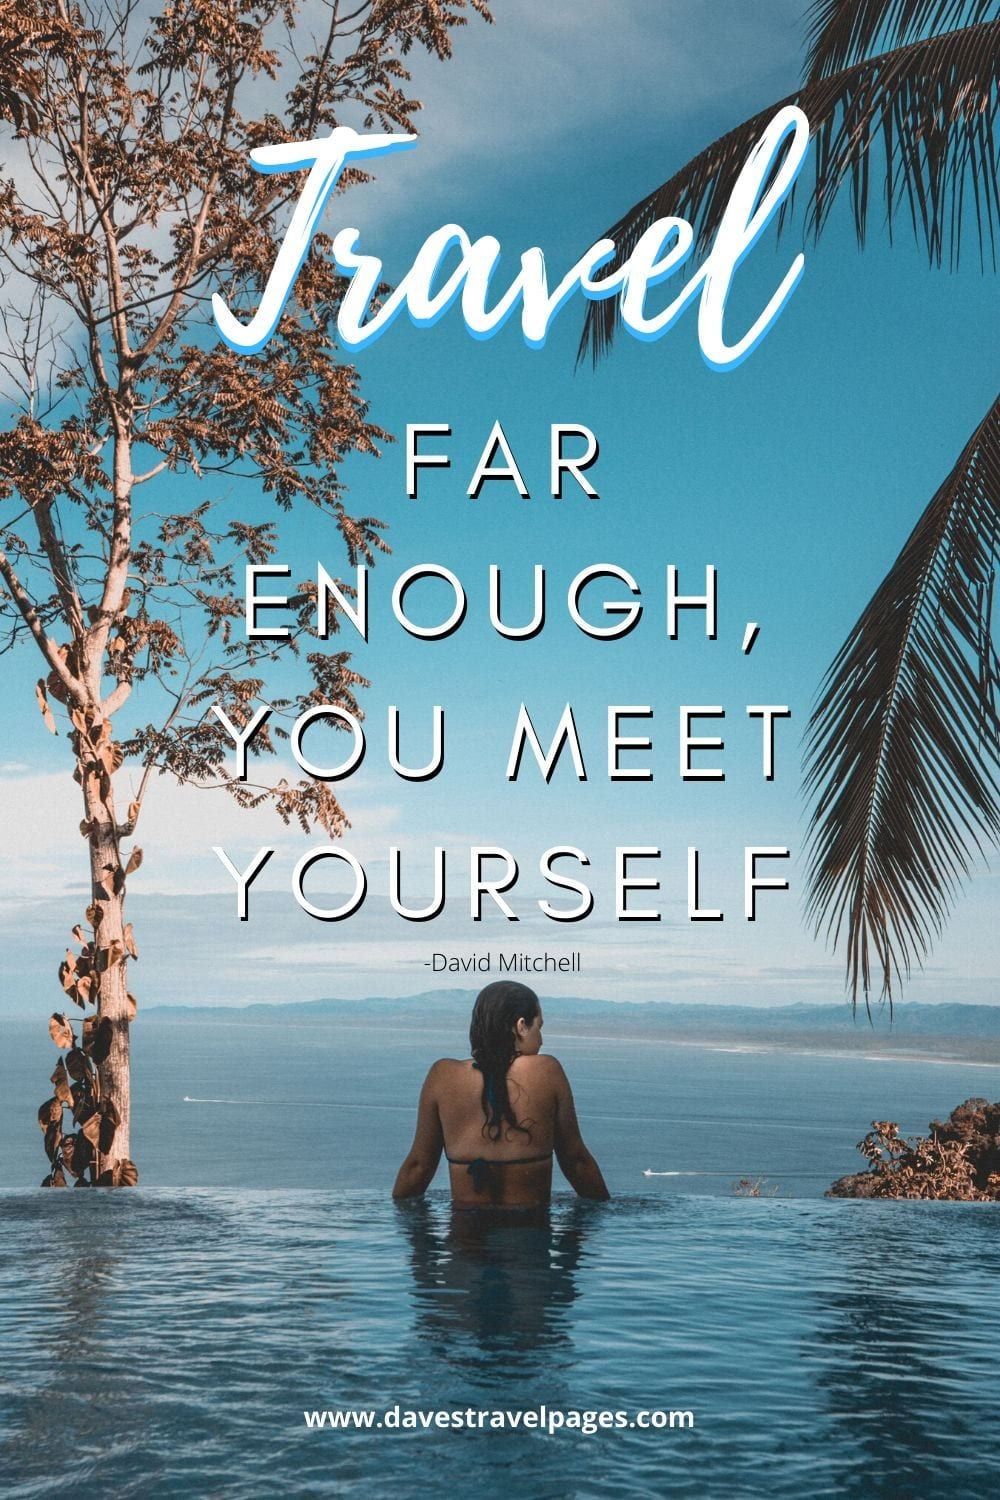 """Travel far enough, you meet yourself"" - David Mitchell"